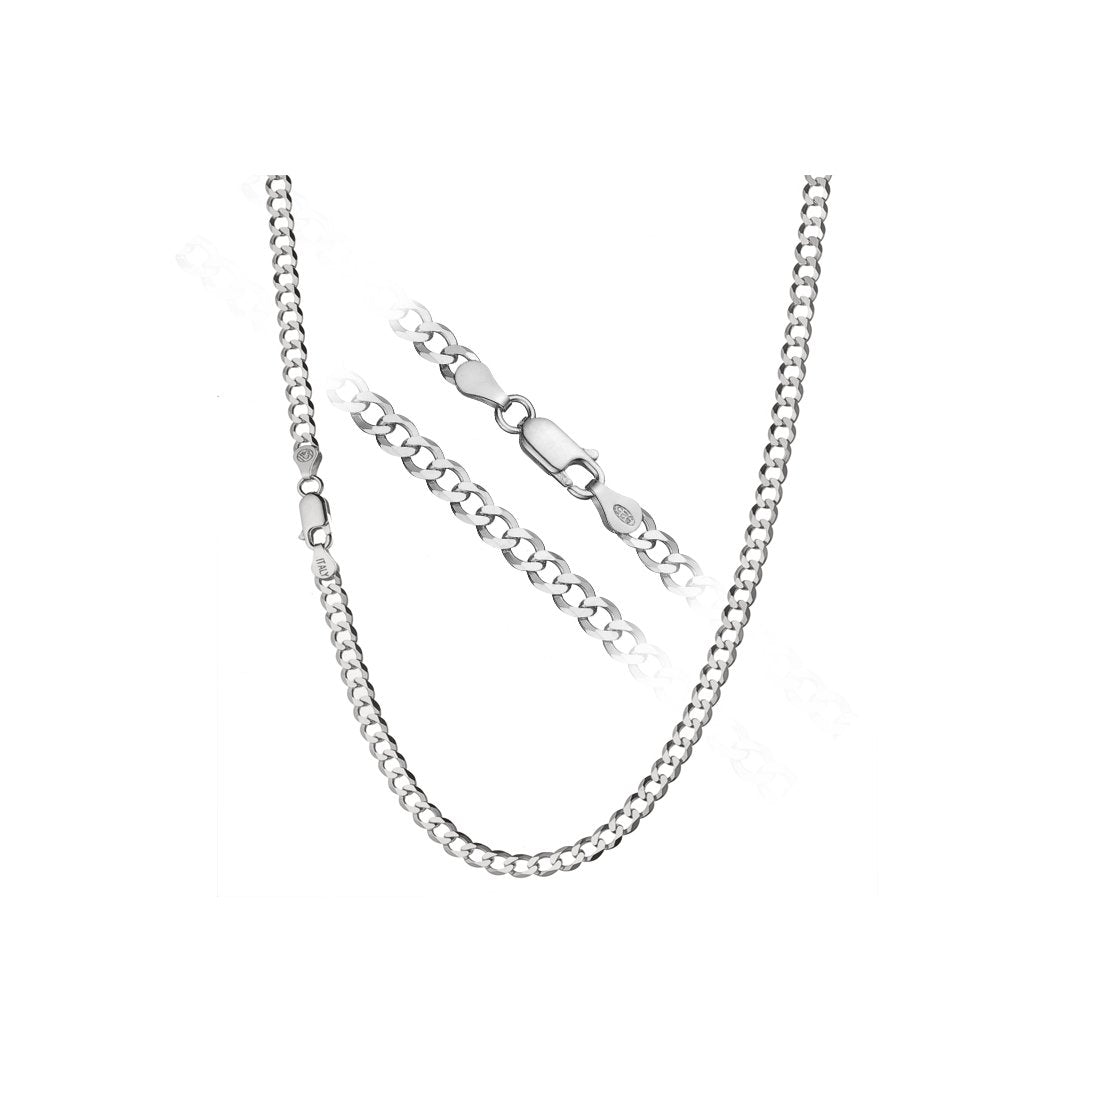 "6MM 150 Rhodium Plated Curb Chain .925 Sterling Silver Length 8""-28"" Inches"